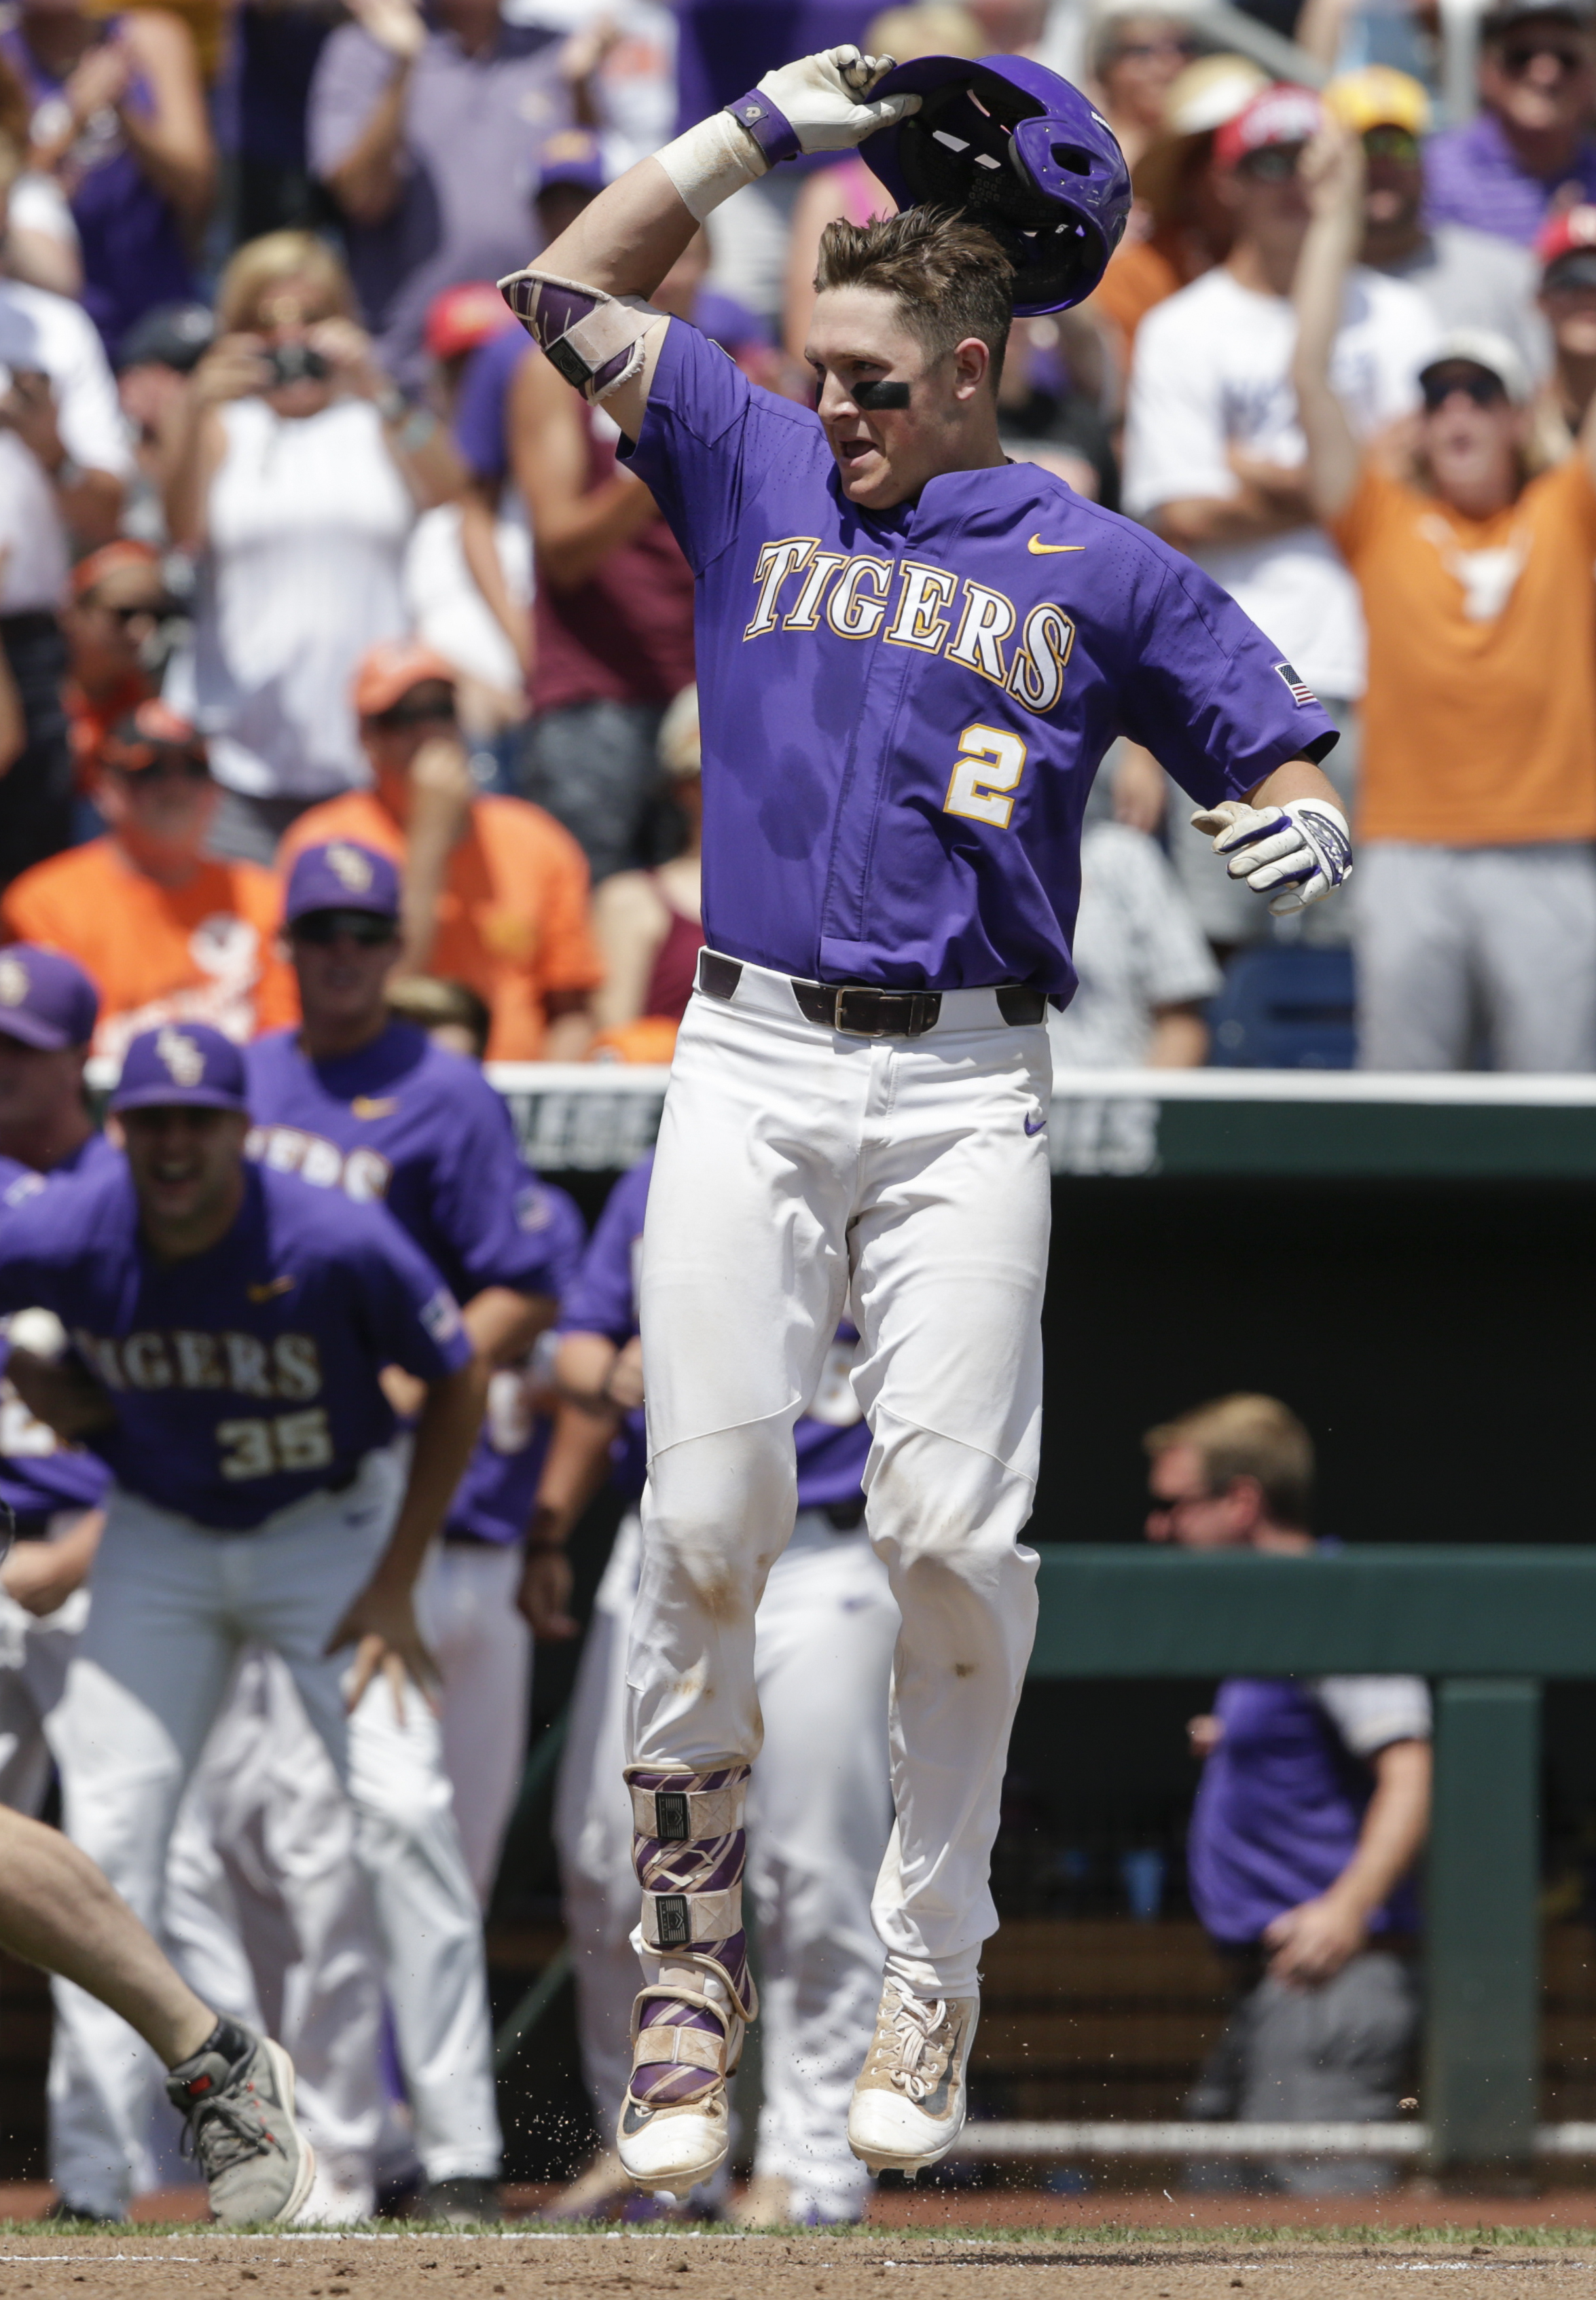 LSU's Michael Papierski (2) celebrates after scoring on his three-run home run against Oregon State in the third inning of an NCAA College World Series baseball elimination game in Omaha, Neb., Saturday, June 24, 2017. (AP Photo/Nati Harnik)